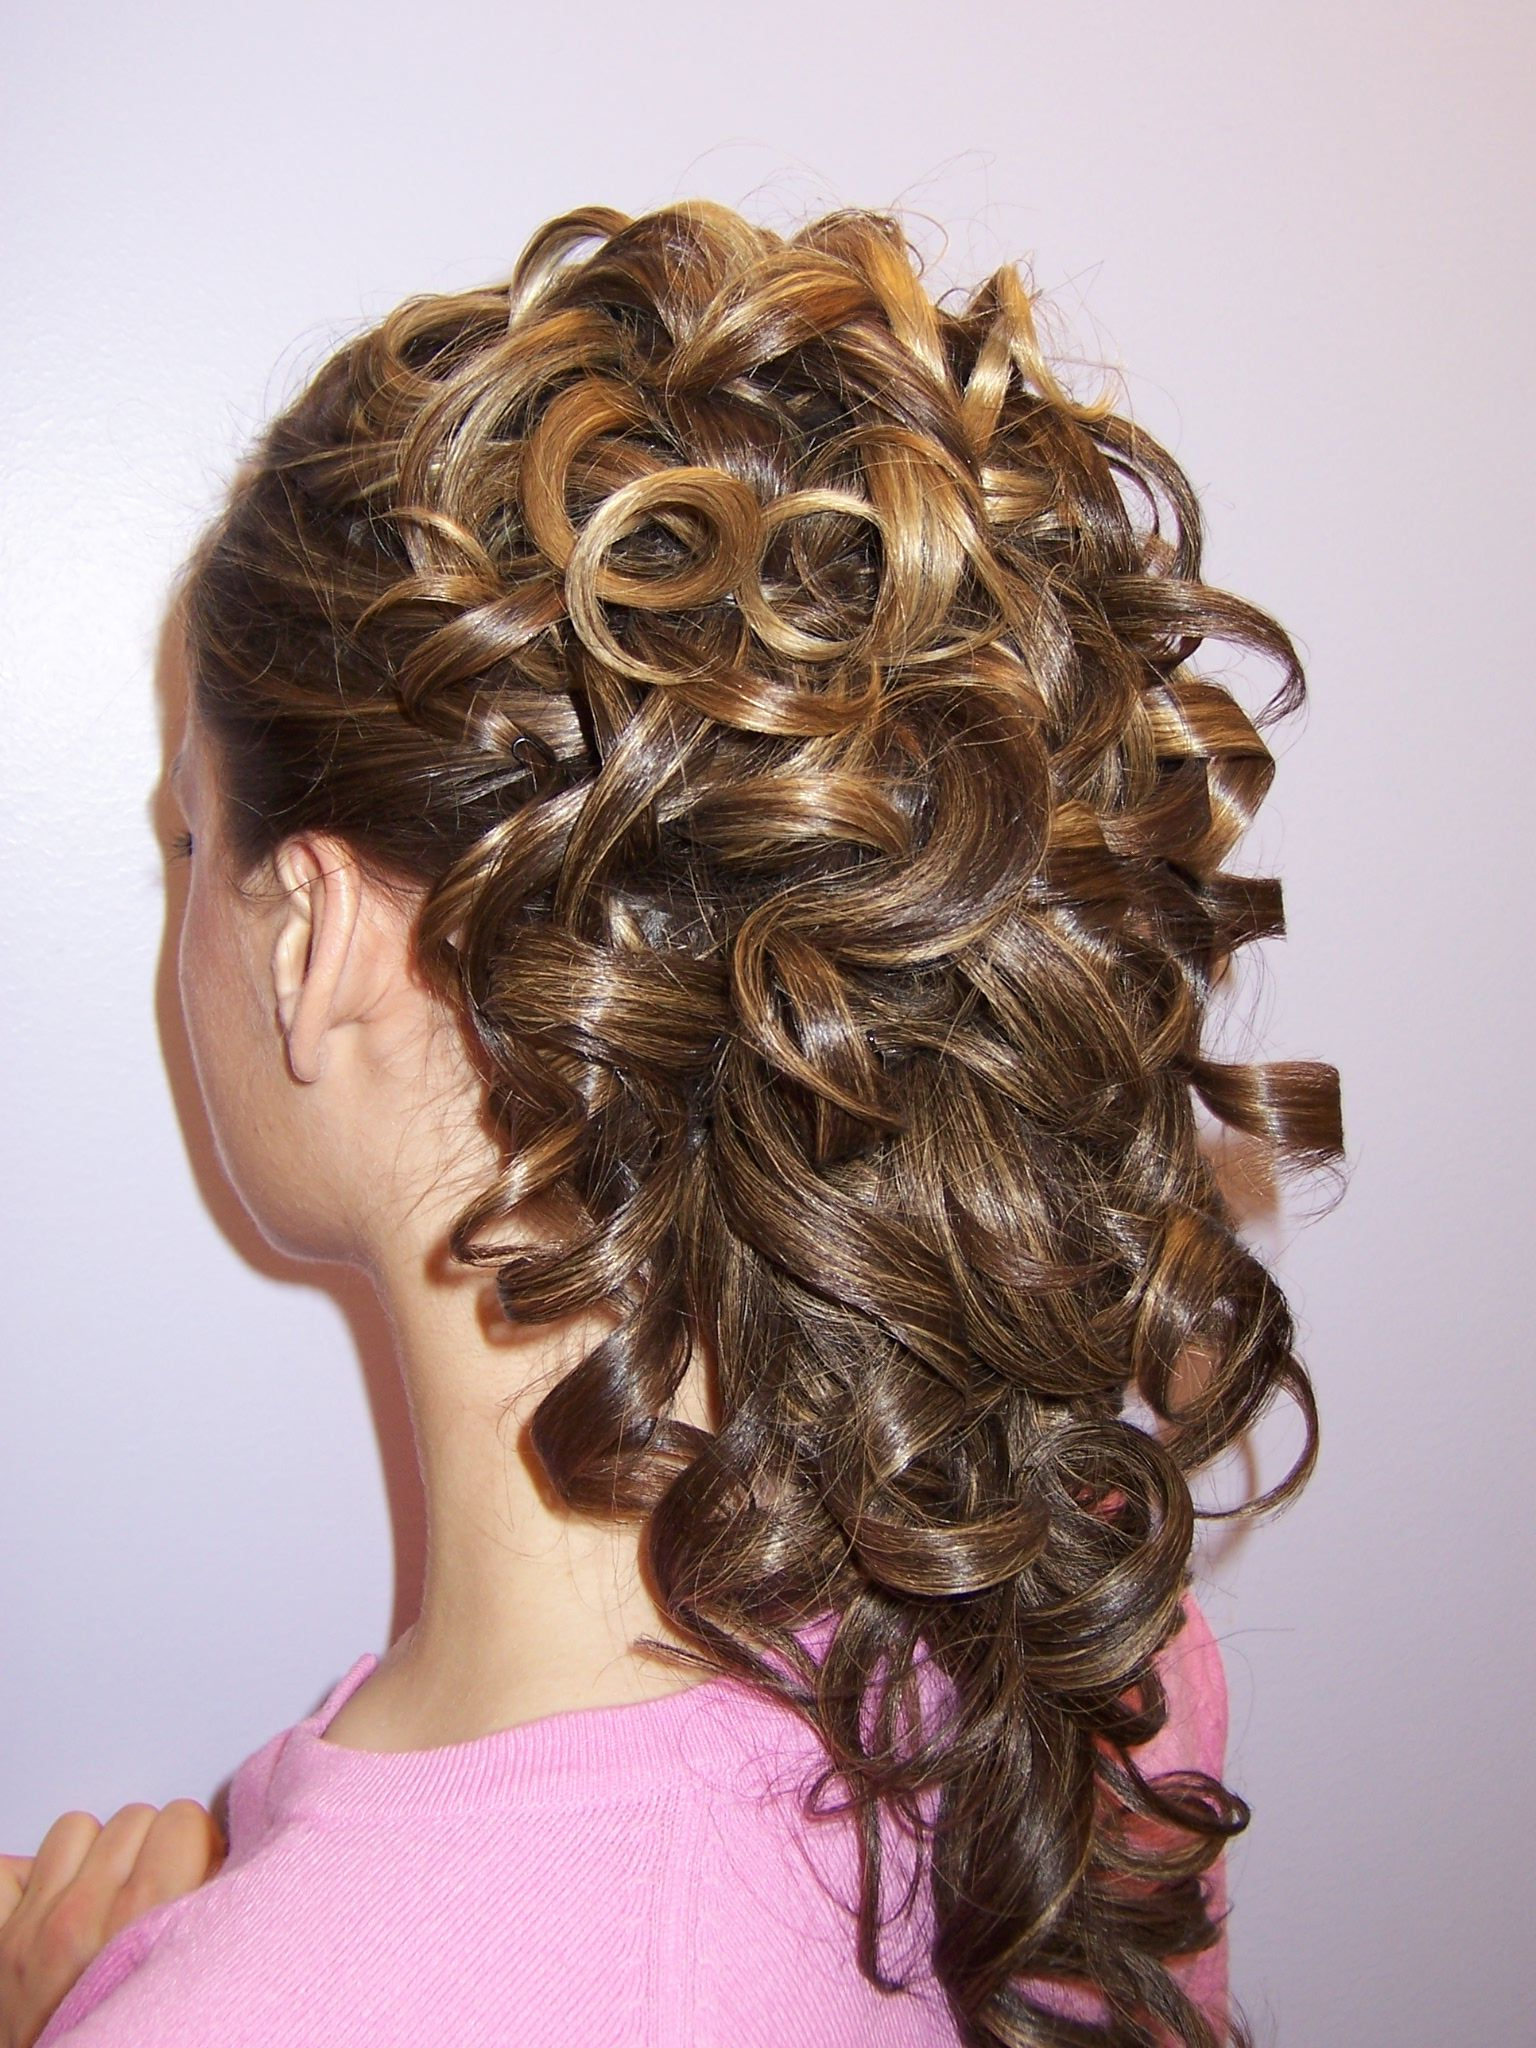 Hair & Beauty That I Love In With Well Liked Cascading Curly Crown Braid Hairstyles (View 11 of 20)